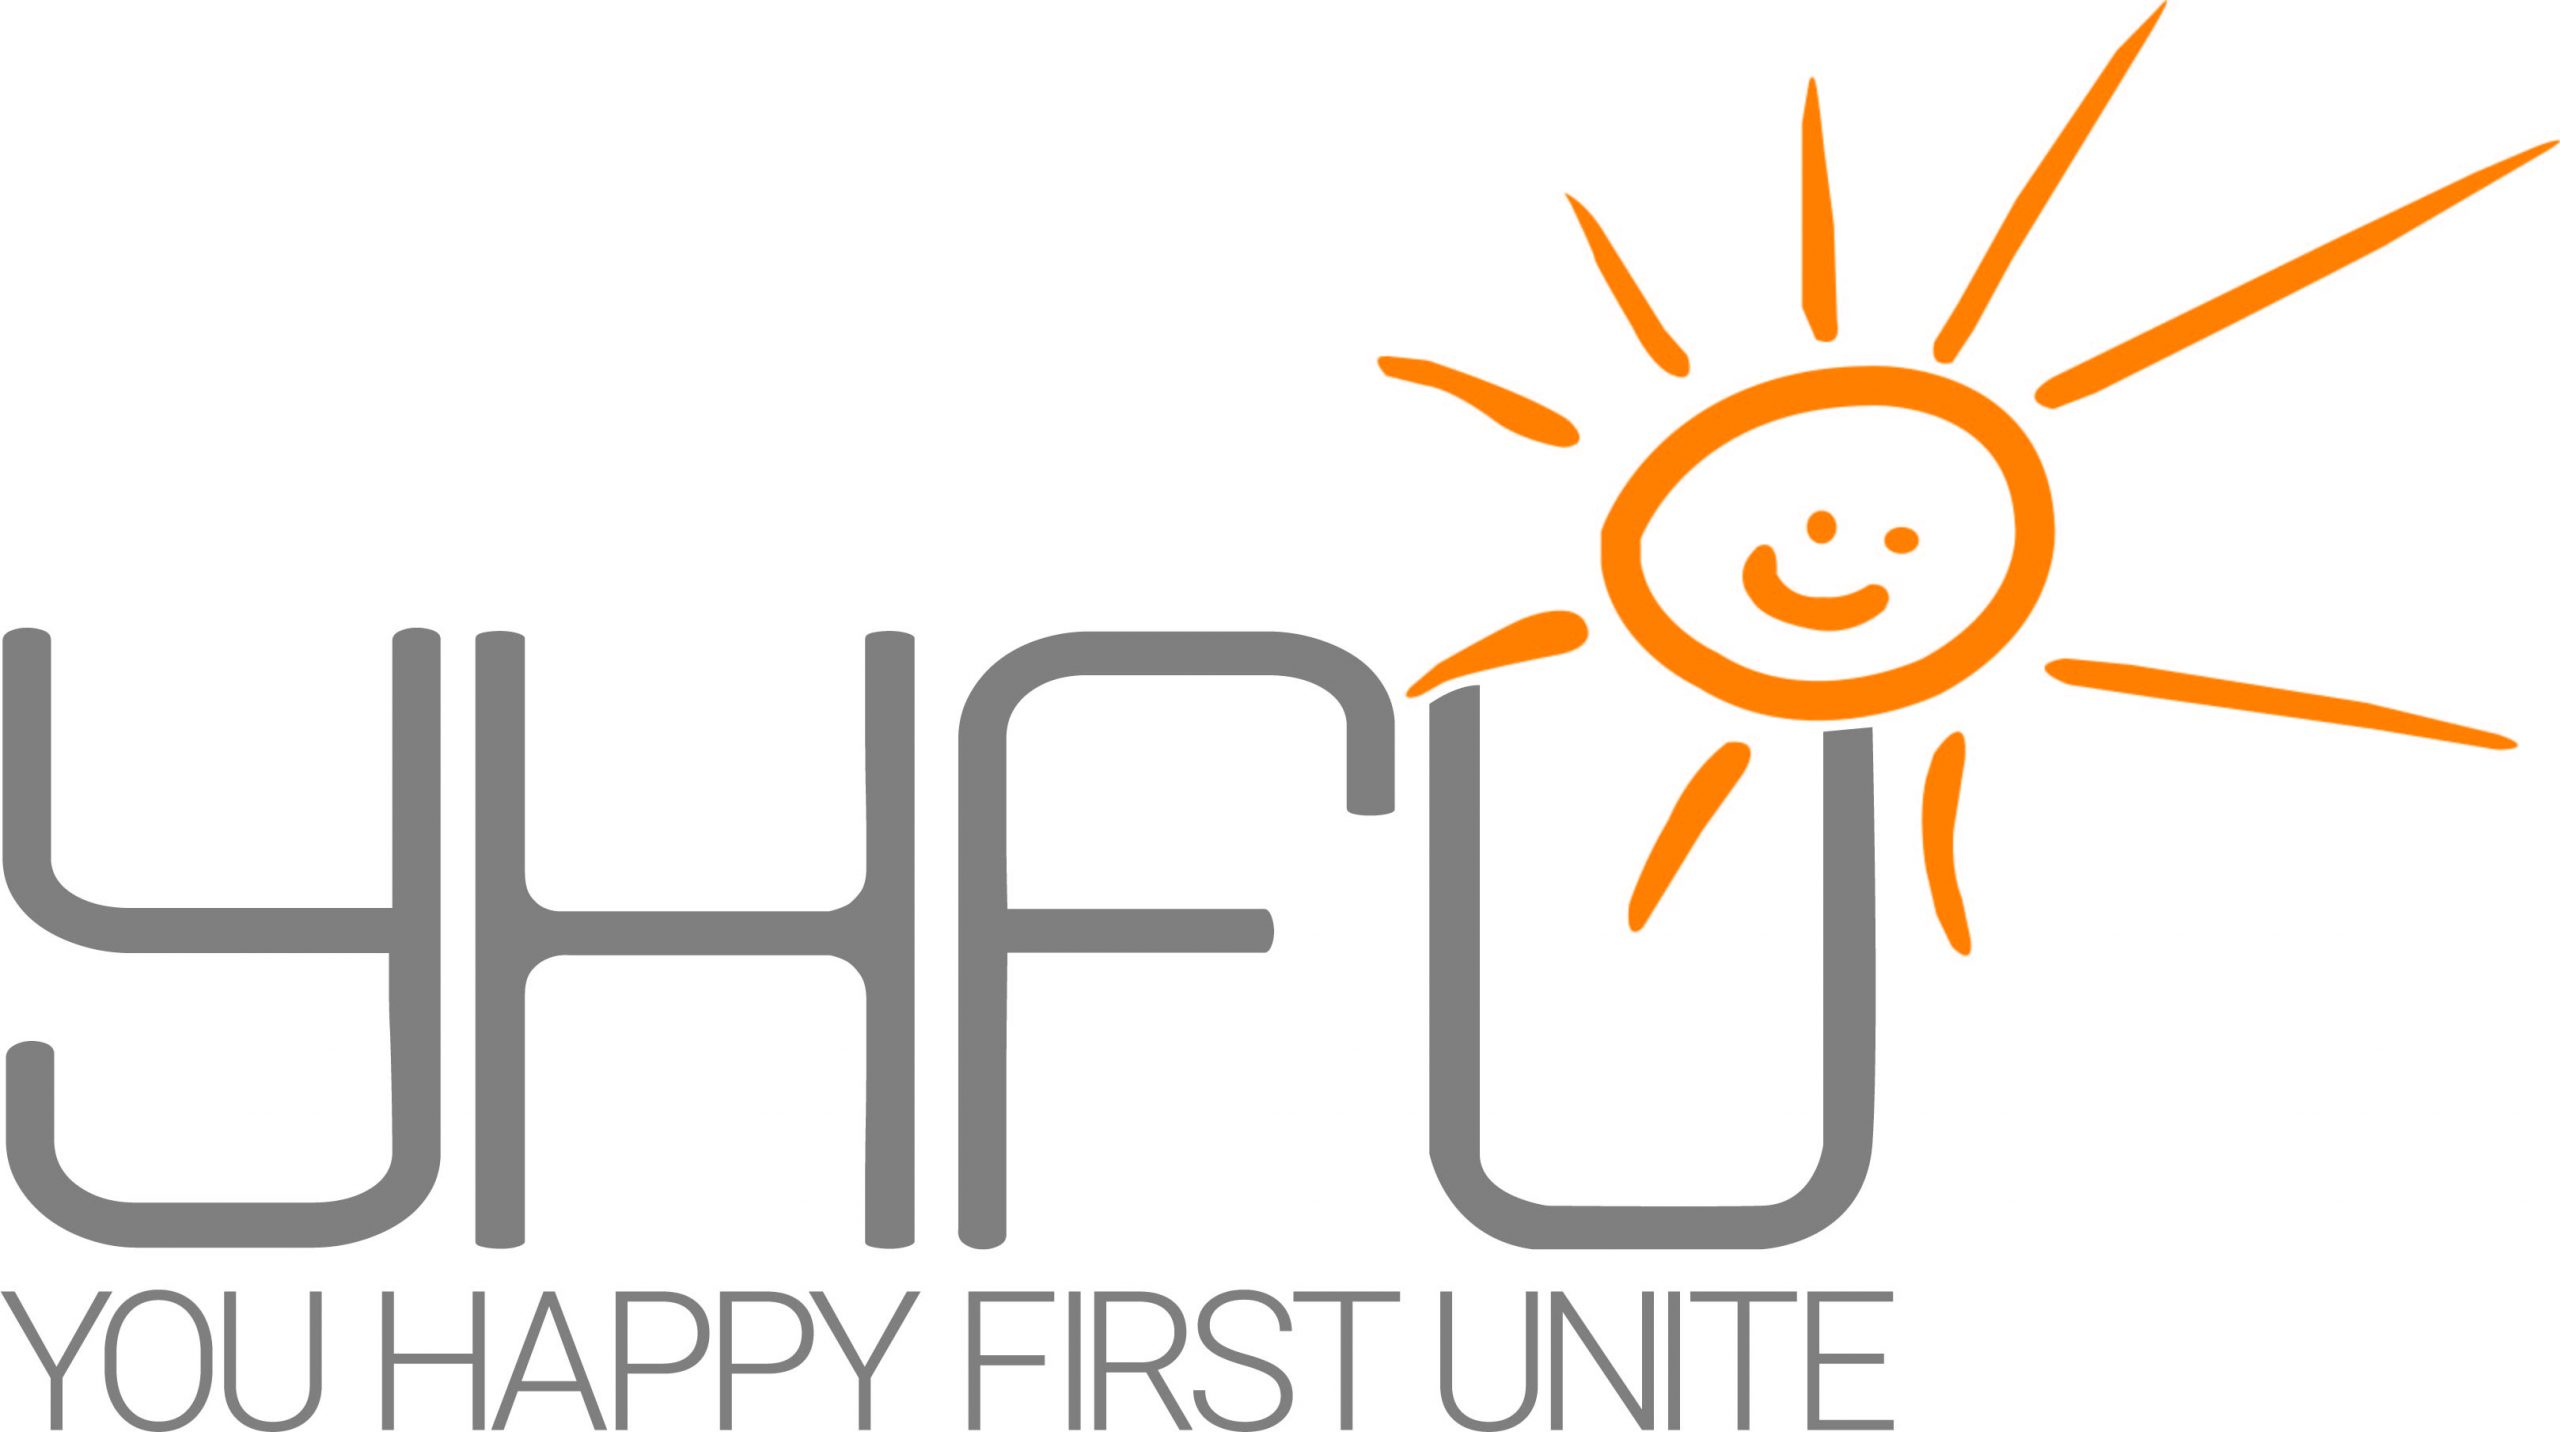 You Happy First Unite